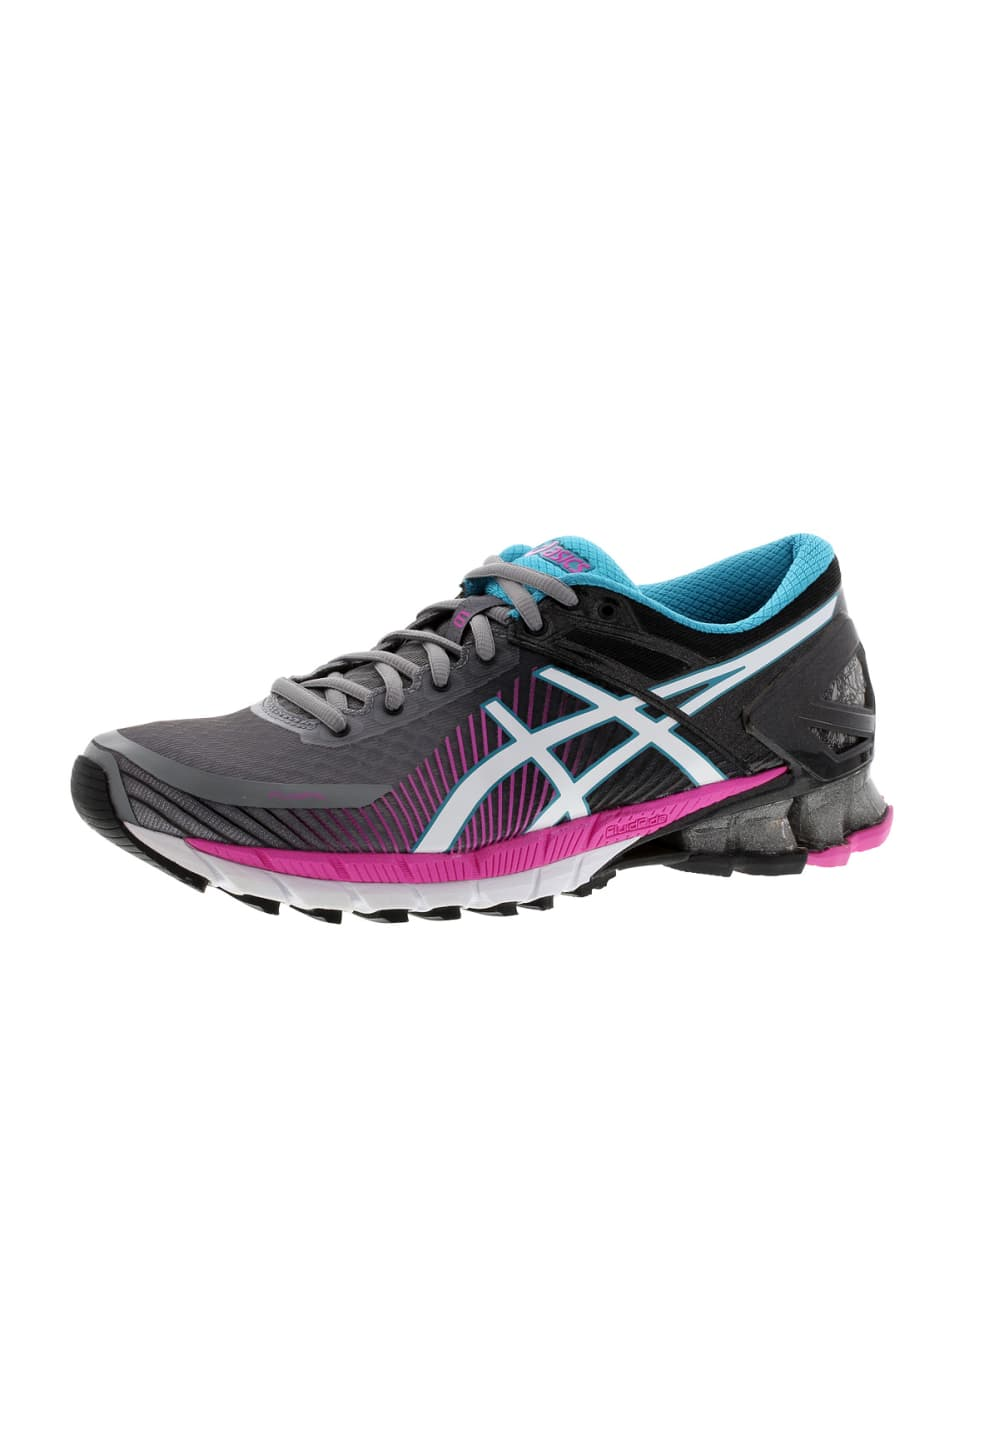 best sneakers 8bc22 f768c ASICS GEL-Kinsei 6 - Running shoes for Women - Black